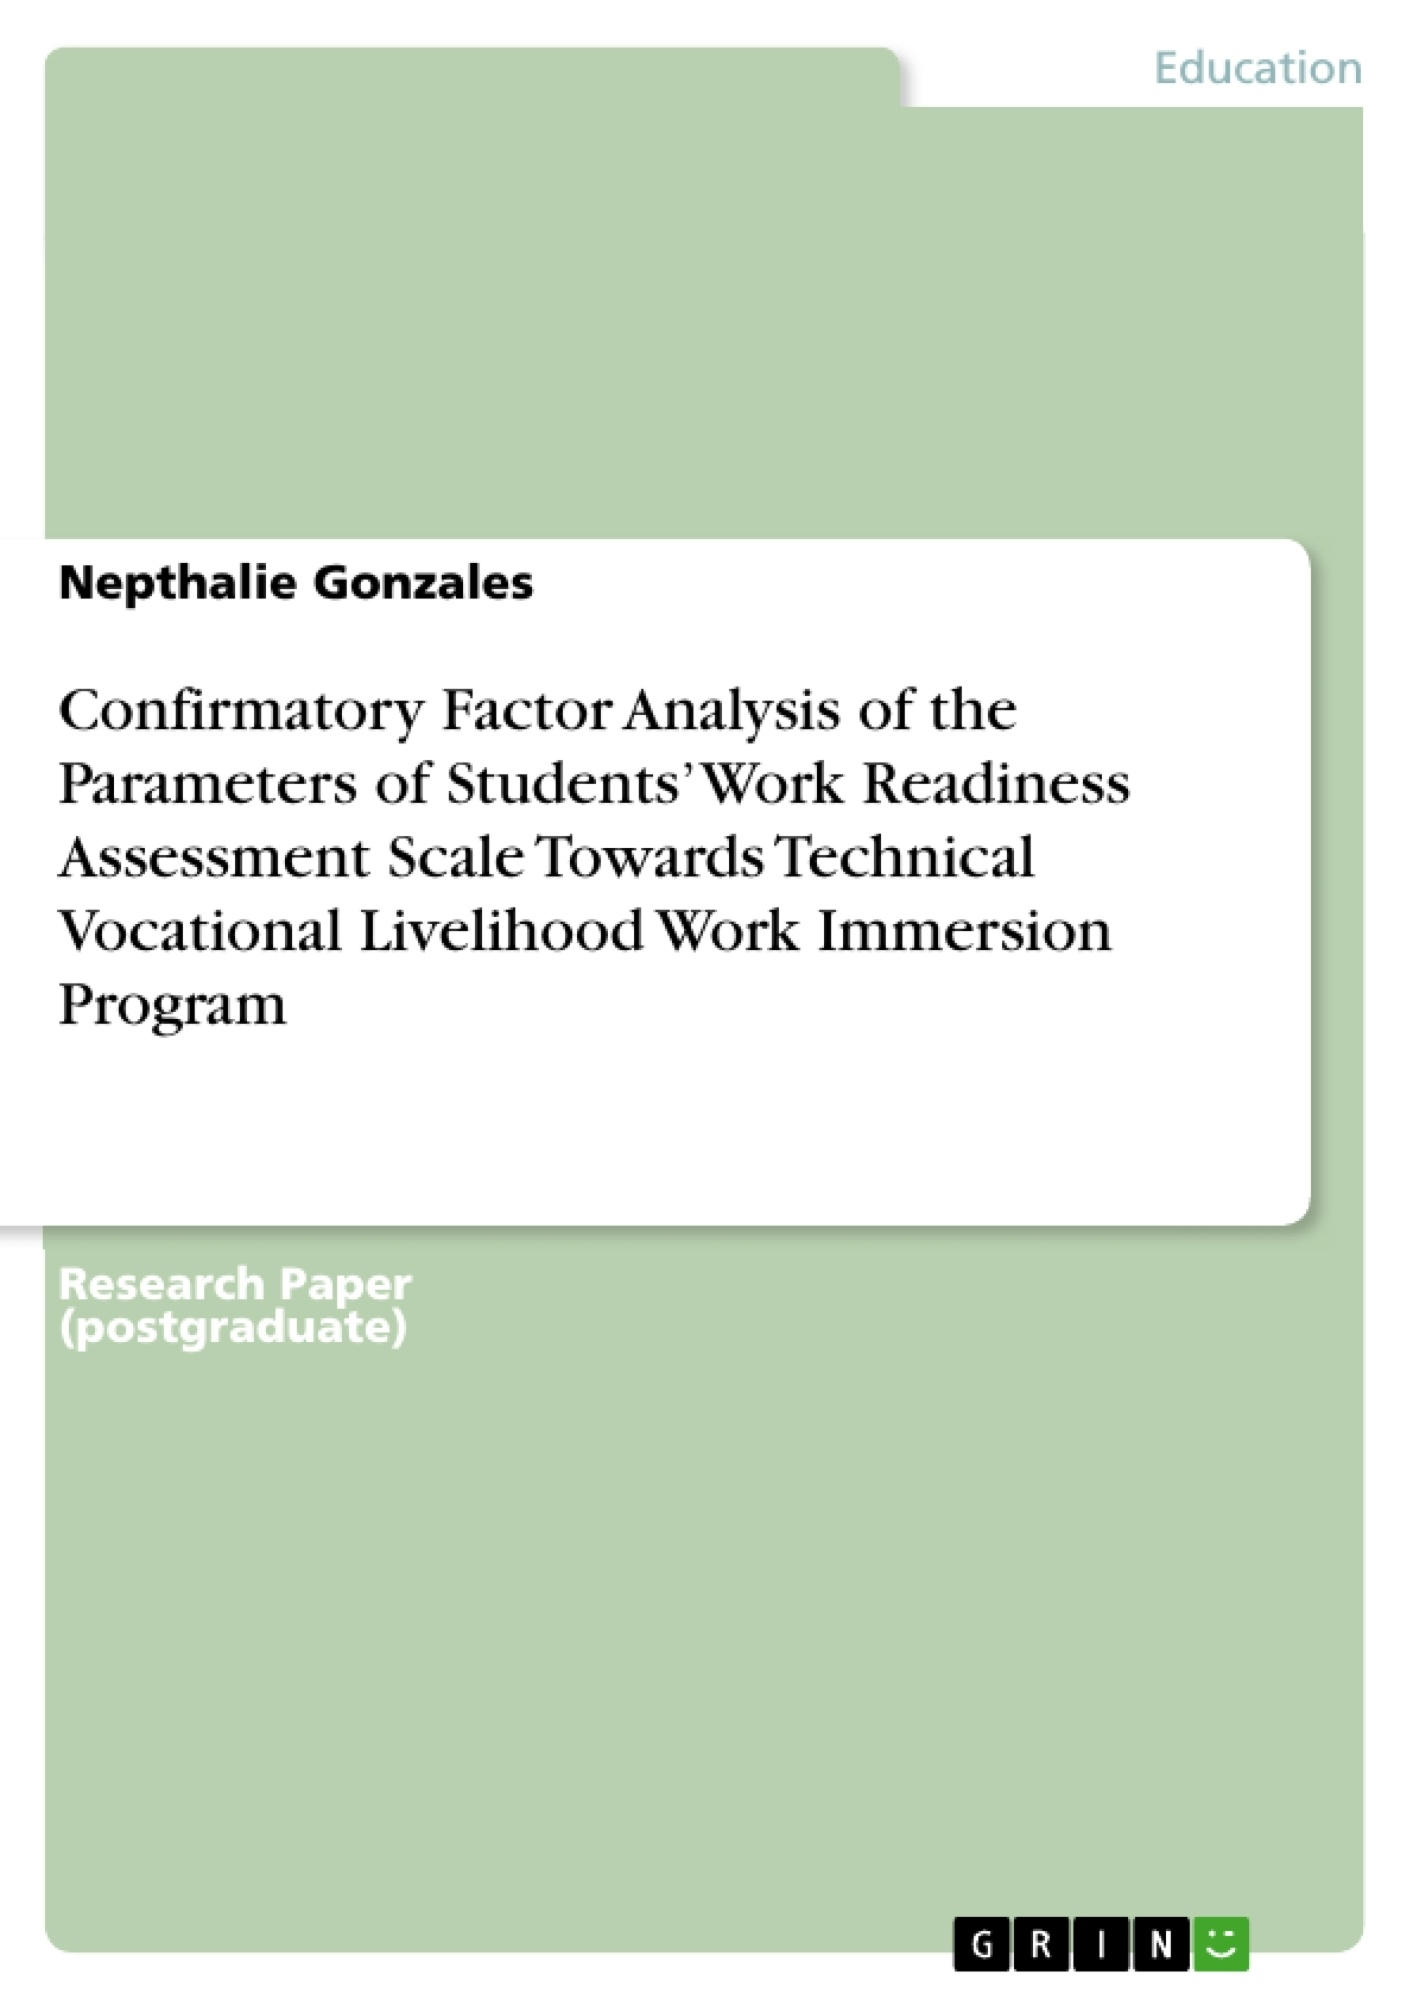 Title: Confirmatory Factor Analysis of the Parameters of Students'  Work Readiness Assessment Scale Towards Technical  Vocational Livelihood Work Immersion Program